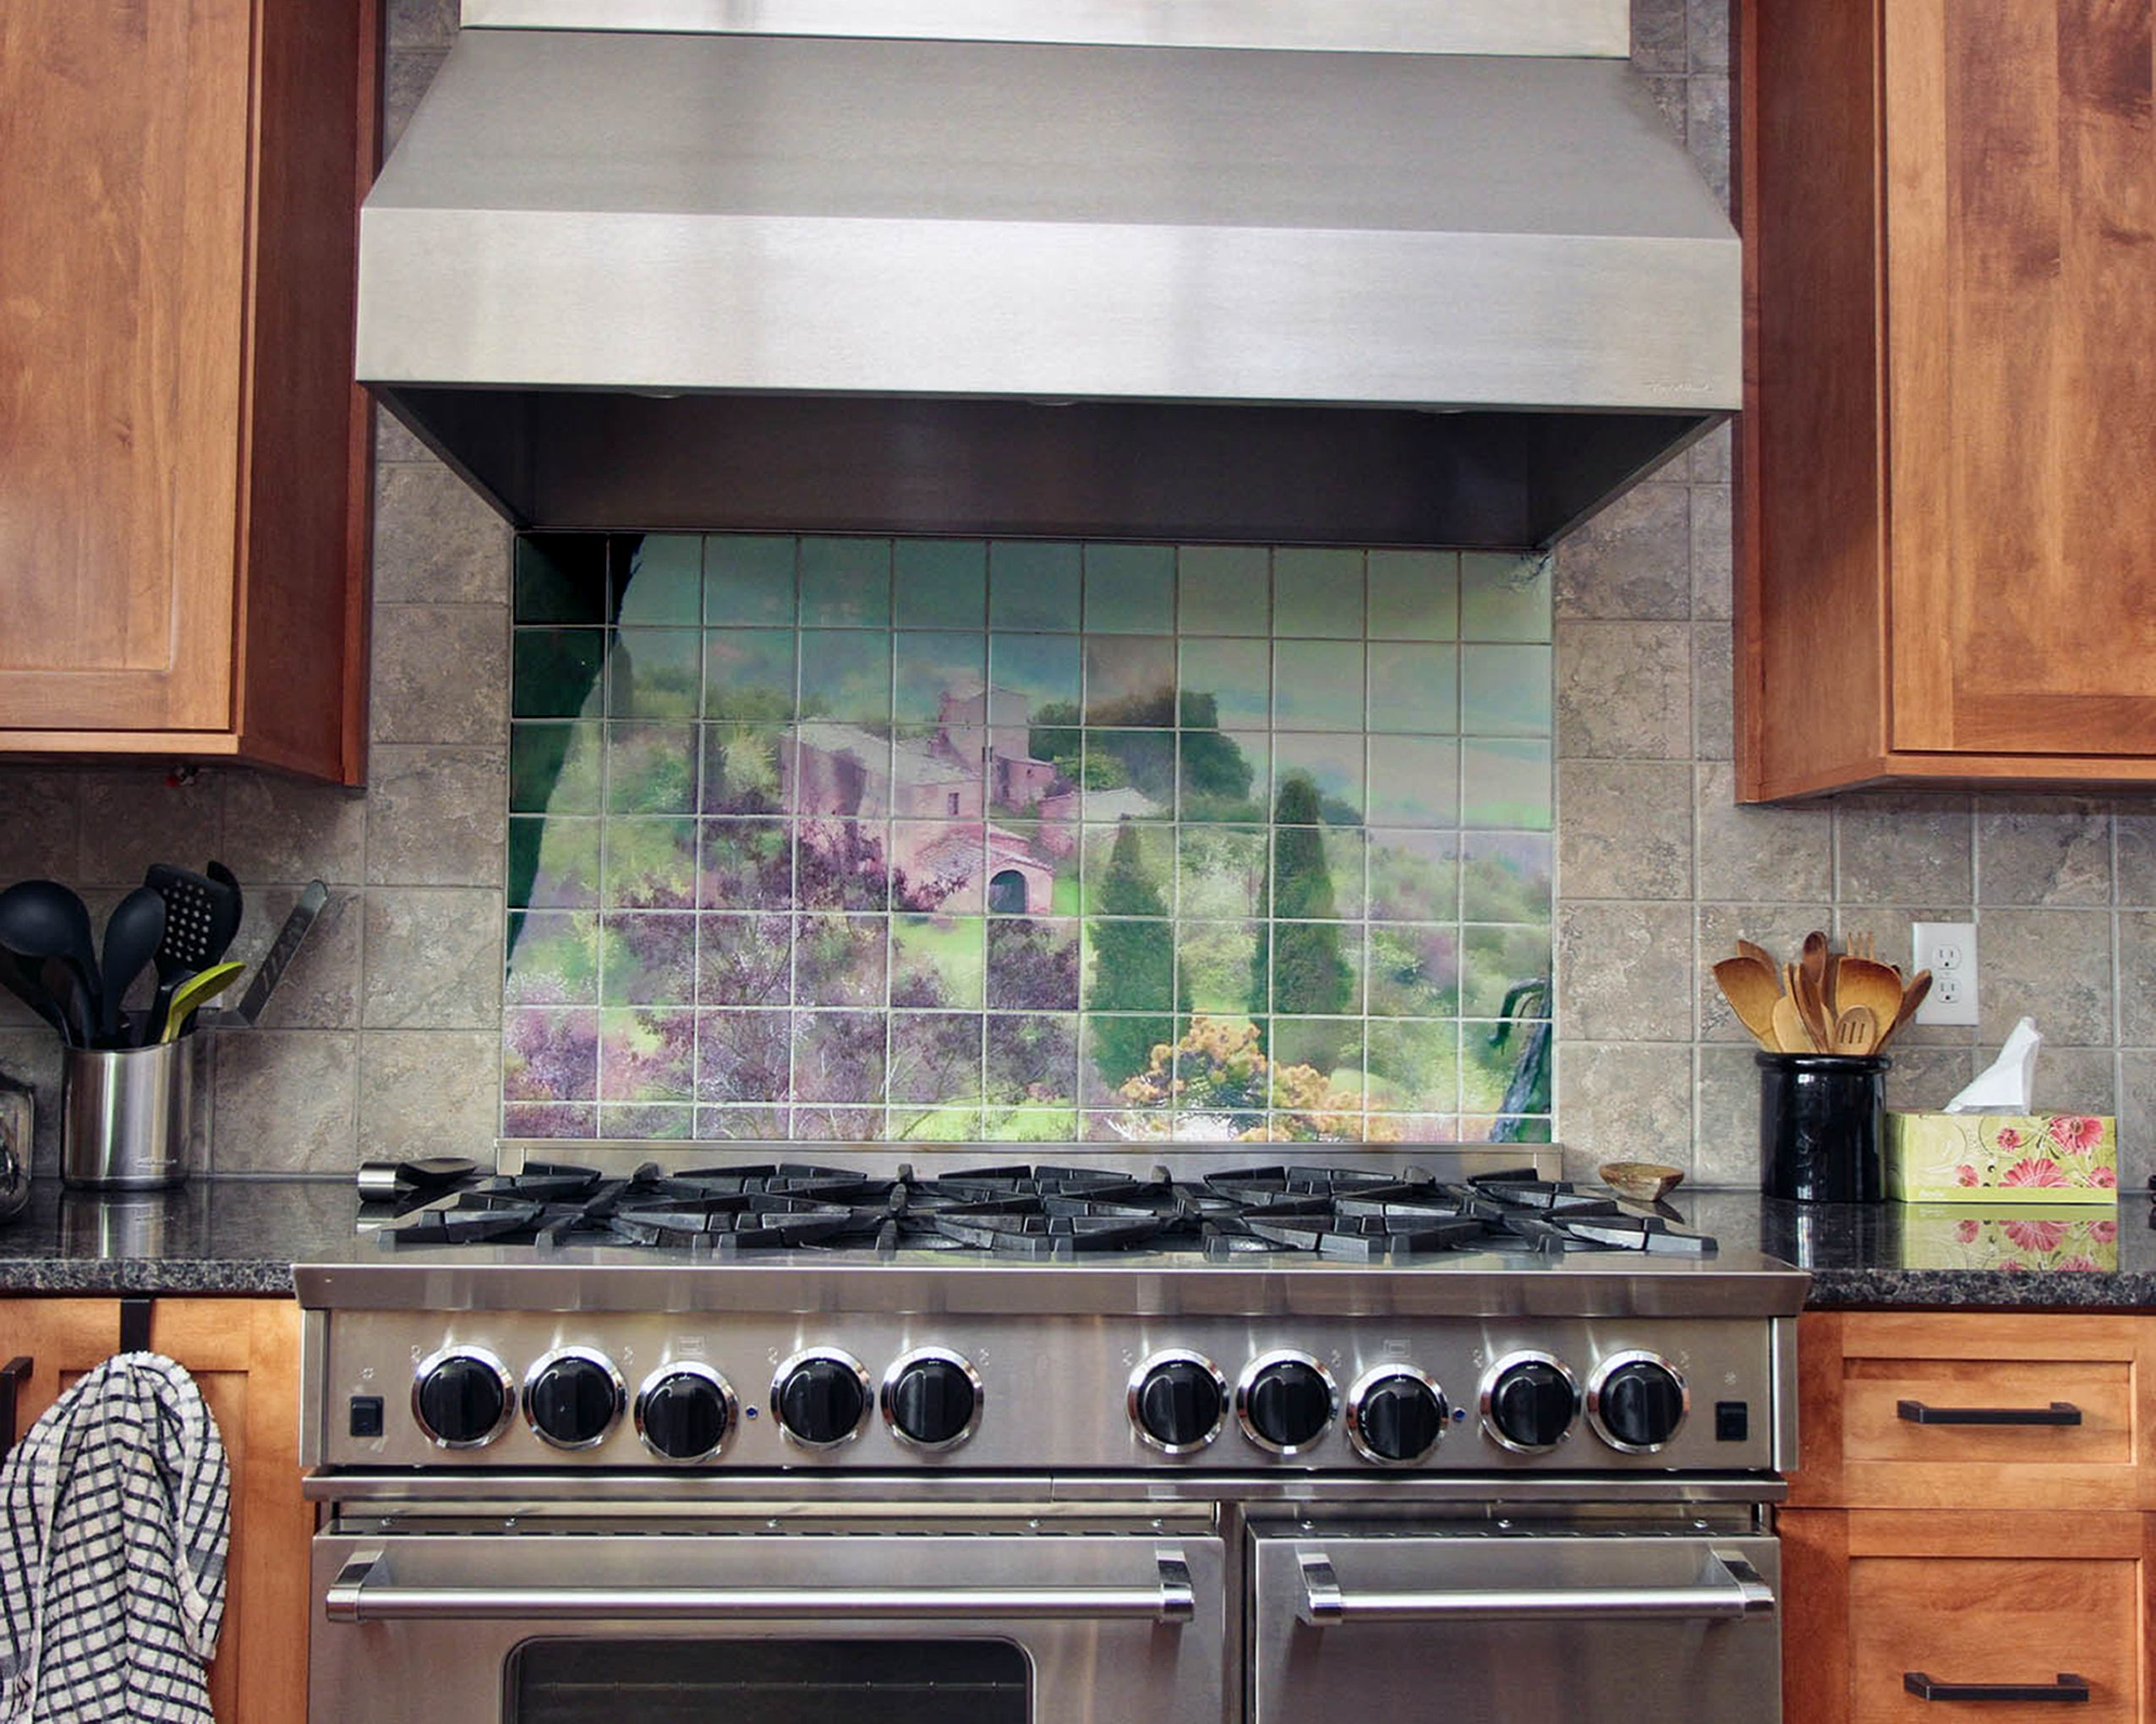 - CUSTOM TILE MURAL BACKSPLASH - From Photograph Of Italian Tuscan